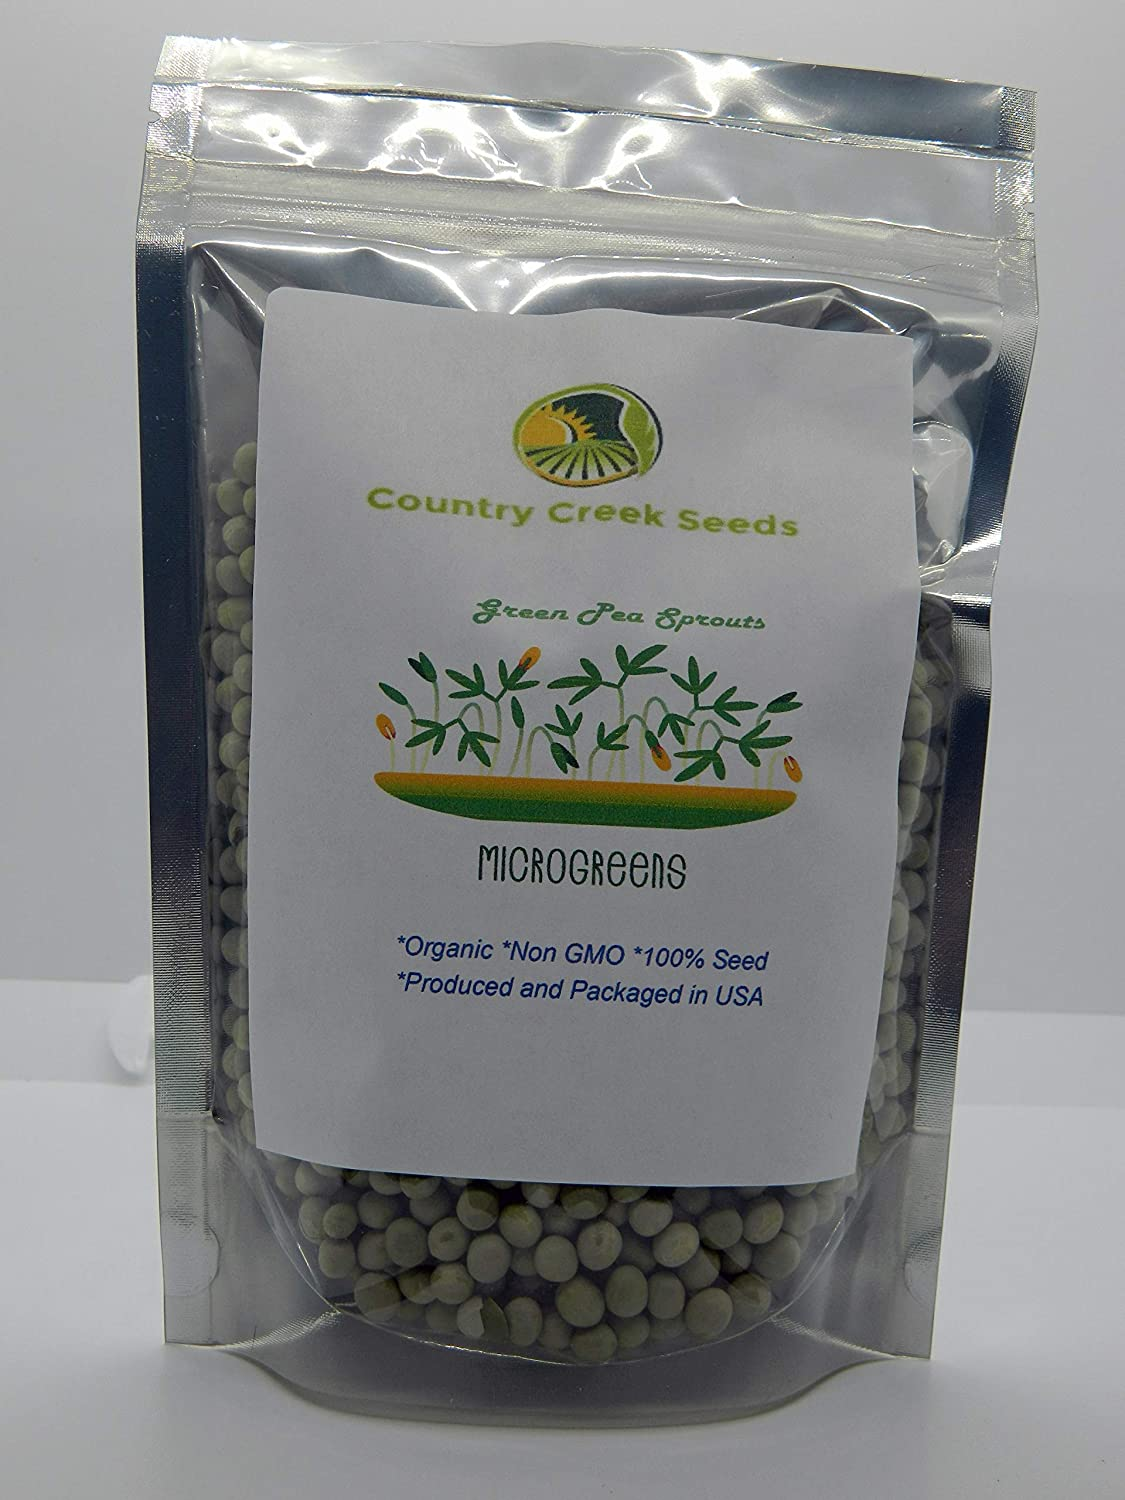 Green Pea Sprouting Seed, Organic, Non GMO - 1 Lb - Country Creek Brand - Green Peas for Sprouts, Garden Planting, Cooking, Soup, Emergency Food Storage, Vegetable Gardening, Juicing, Cover Crop